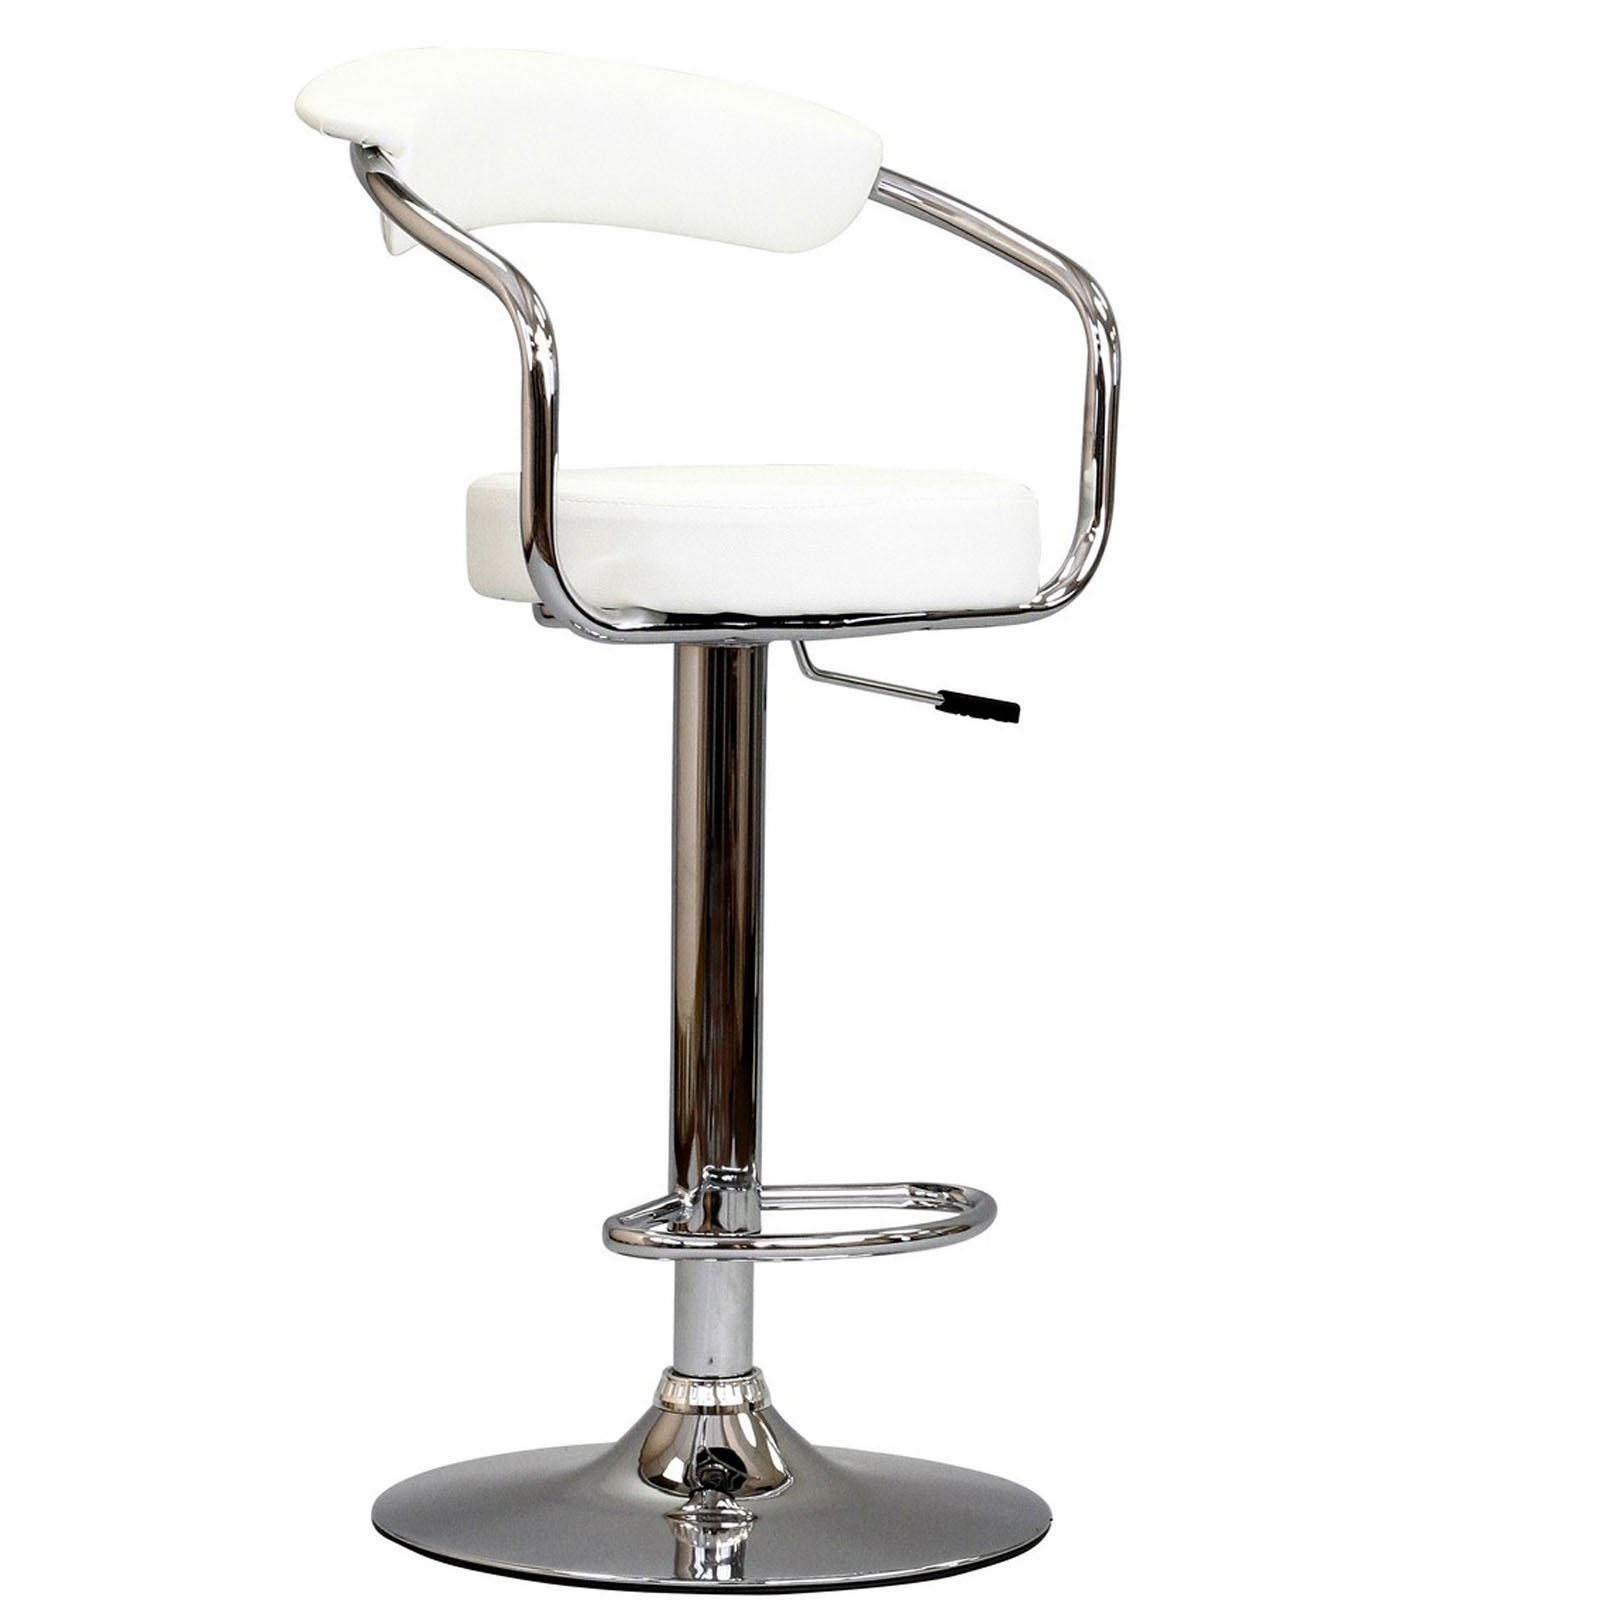 Modway Diner Retro Faux Leather Adjustable Bar Stool in White